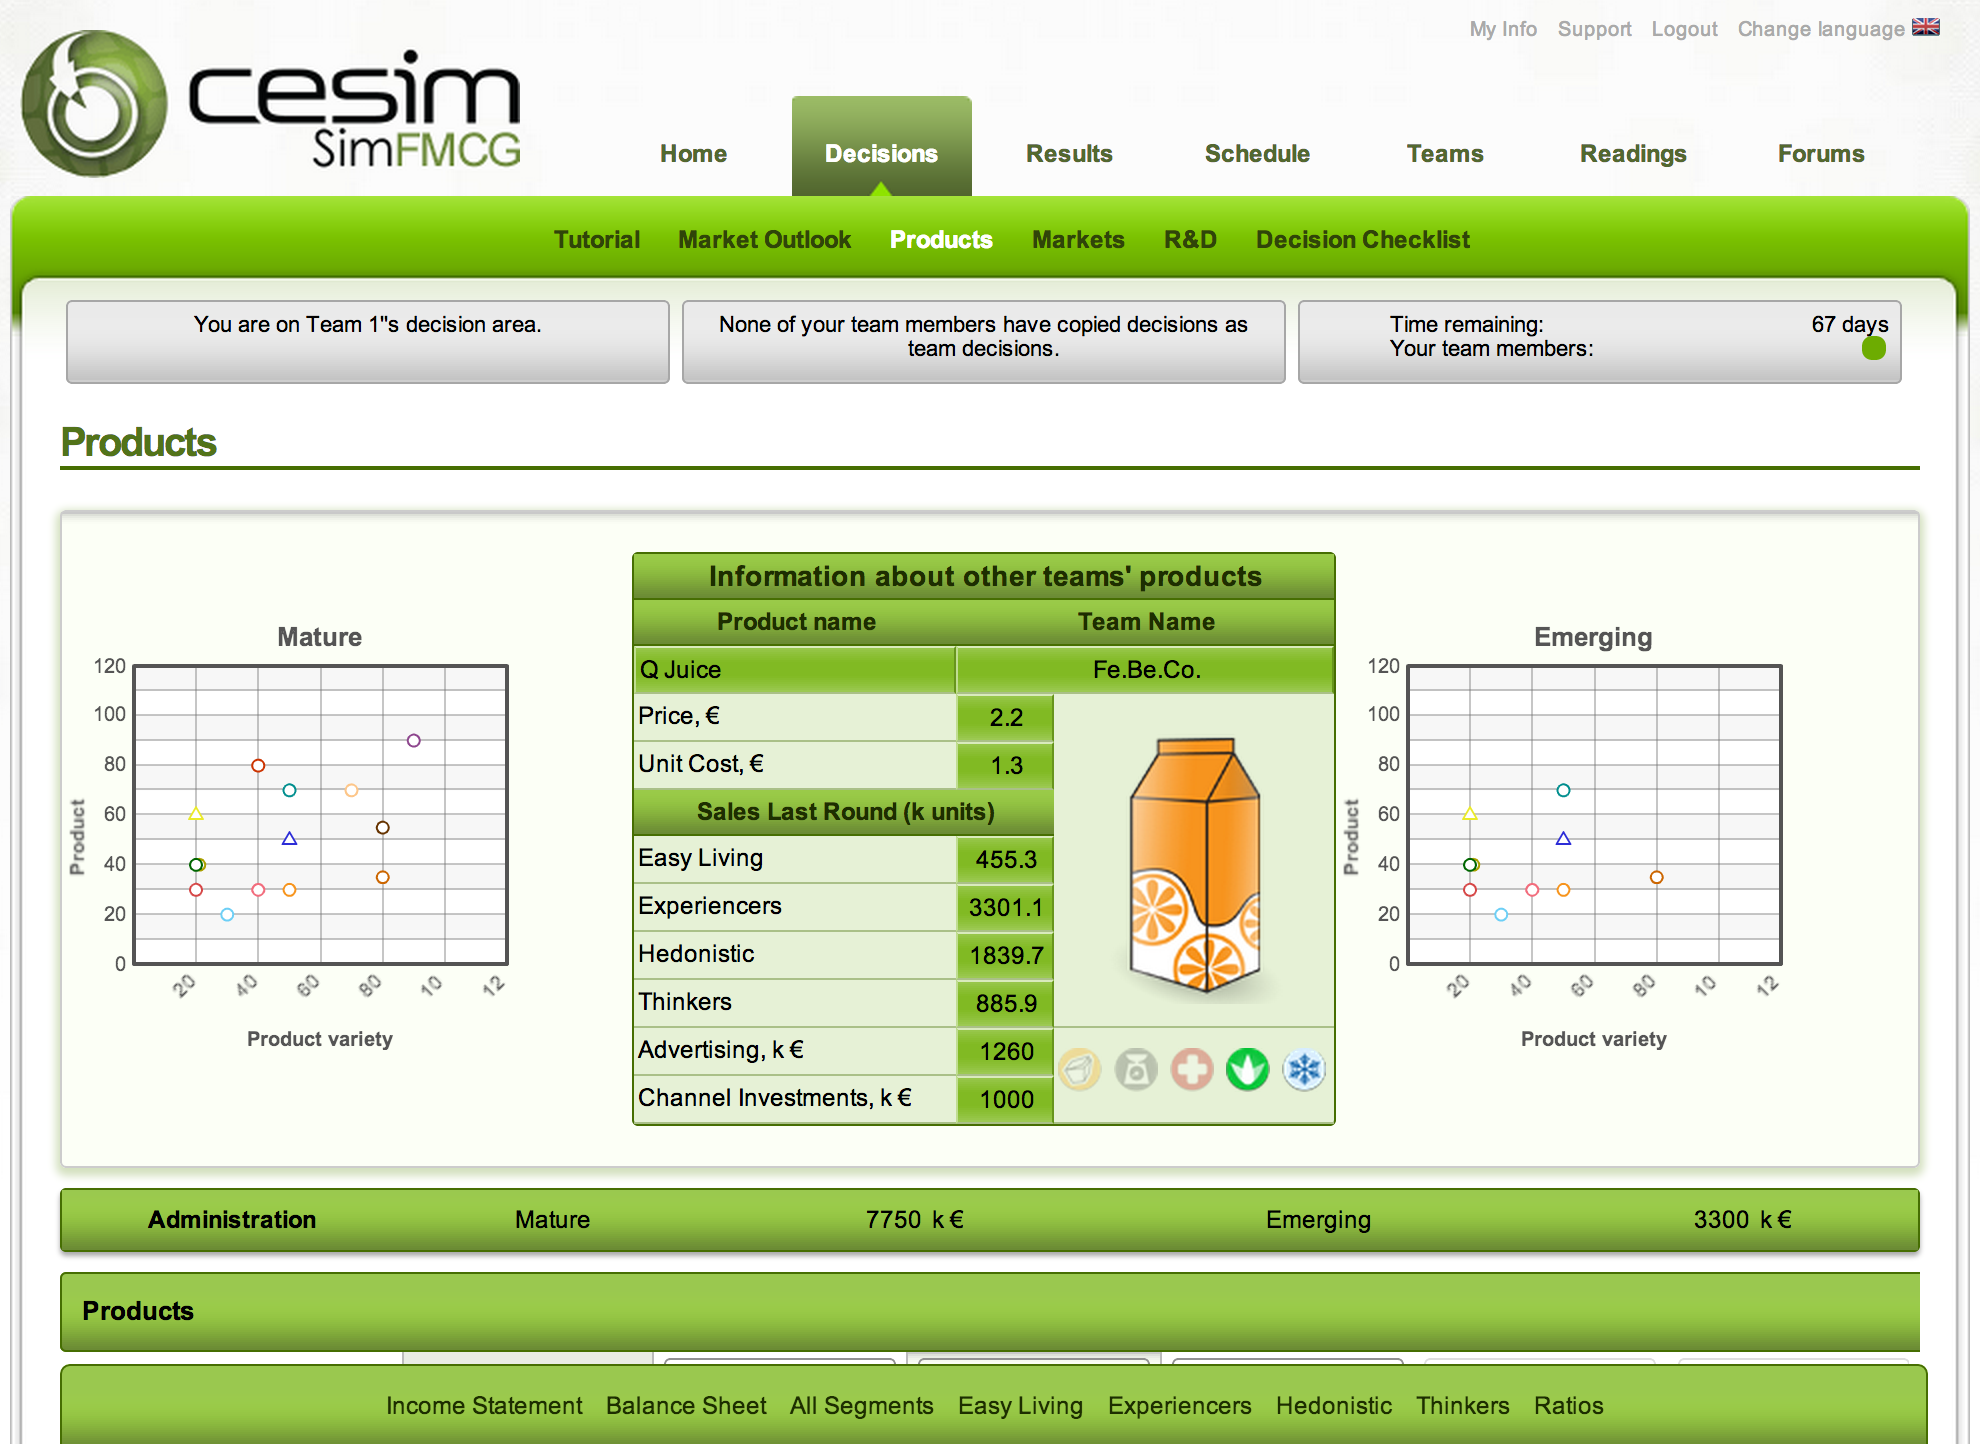 Cesim Marketing Simulation Fast Moving Consumer Goods